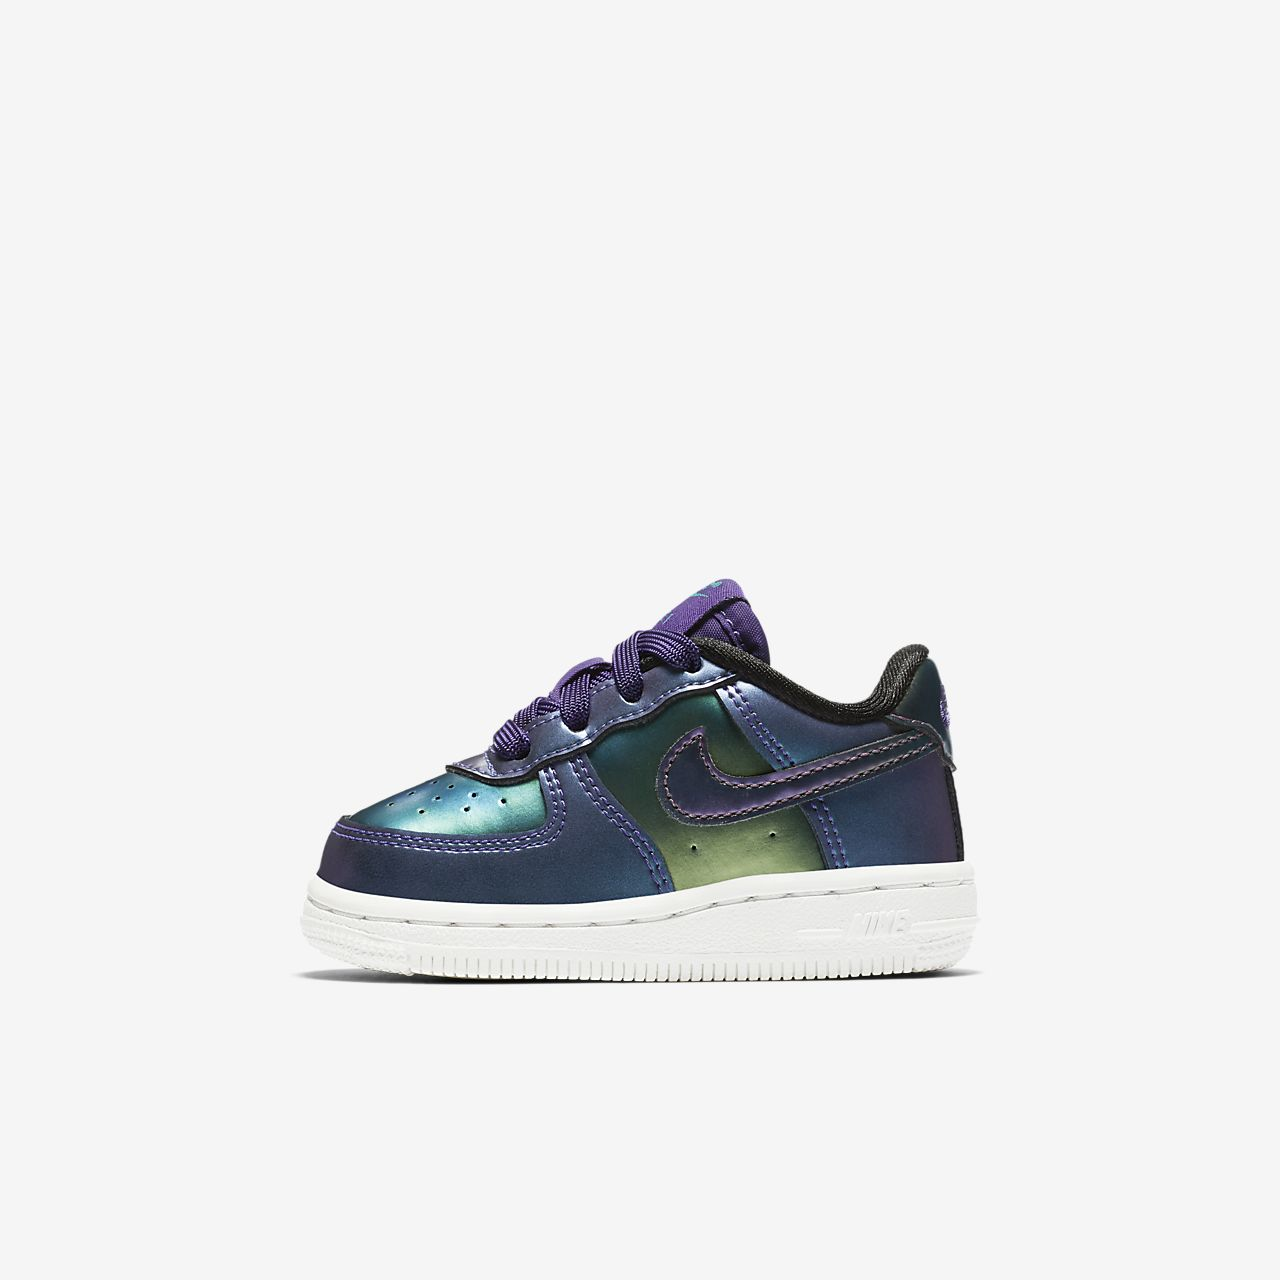 76d8f63c7fc0ee Nike Air Force 1 LV8 Infant Toddler Shoe. Nike.com